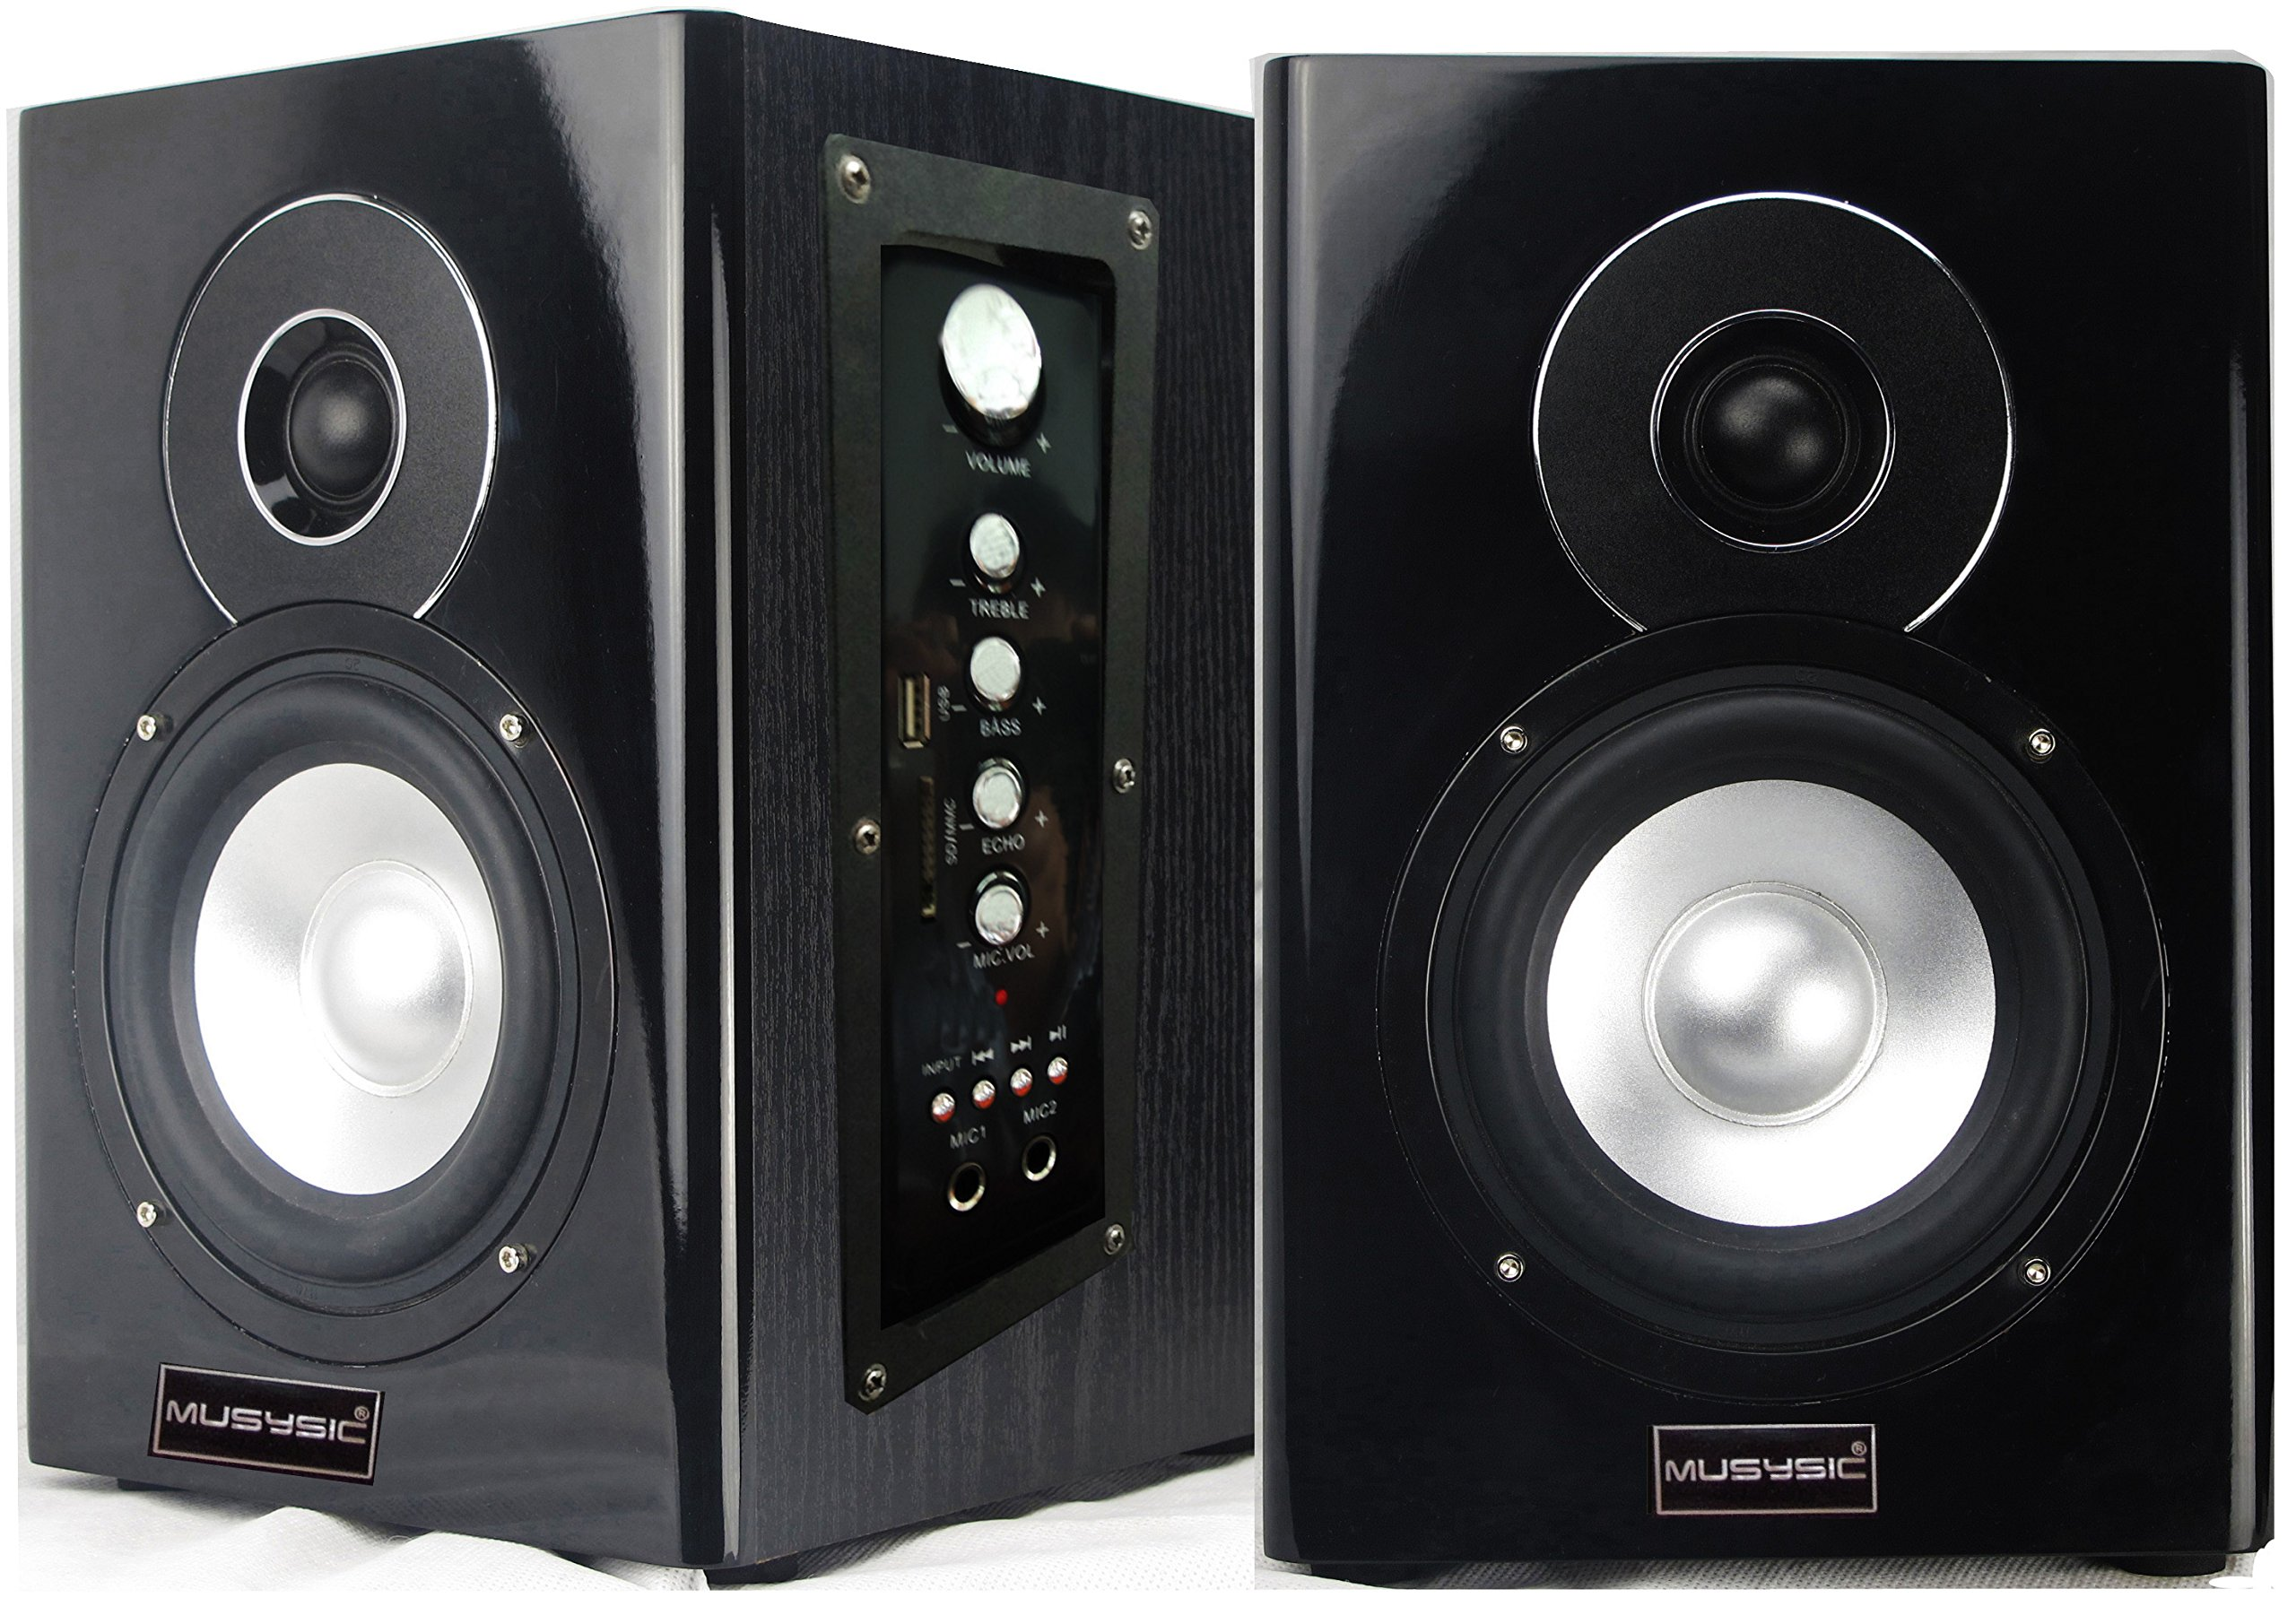 Professional 400 Watts Active/Powered Studio Monitor Speakers Bluetooth/USB/SD/FM Radio by MUSYSIC